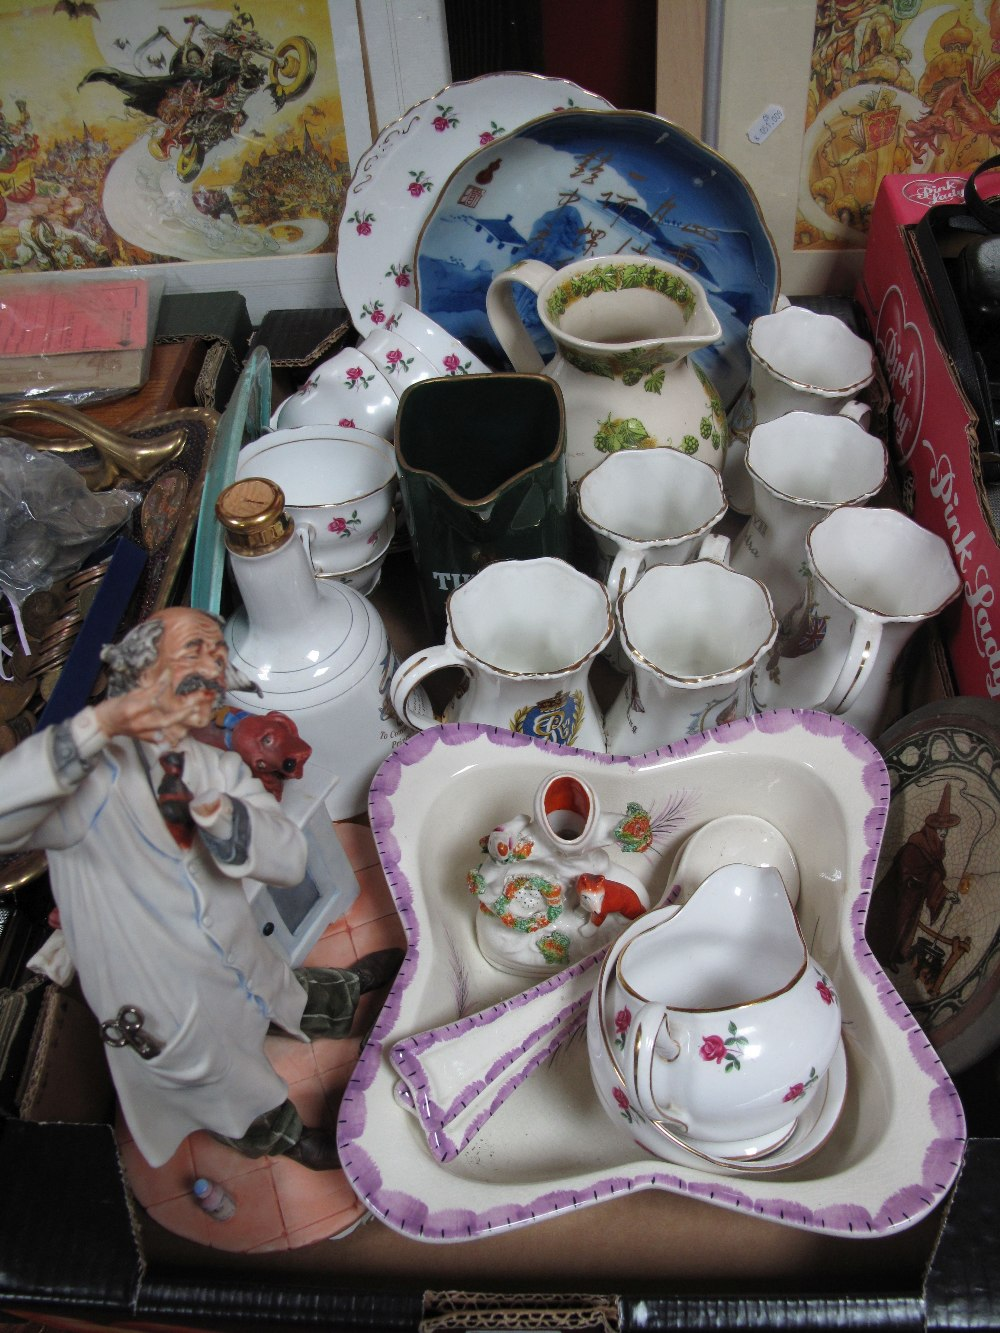 Lot 4 - Pub Water Jugs, St. George mugs, etc:- One Box